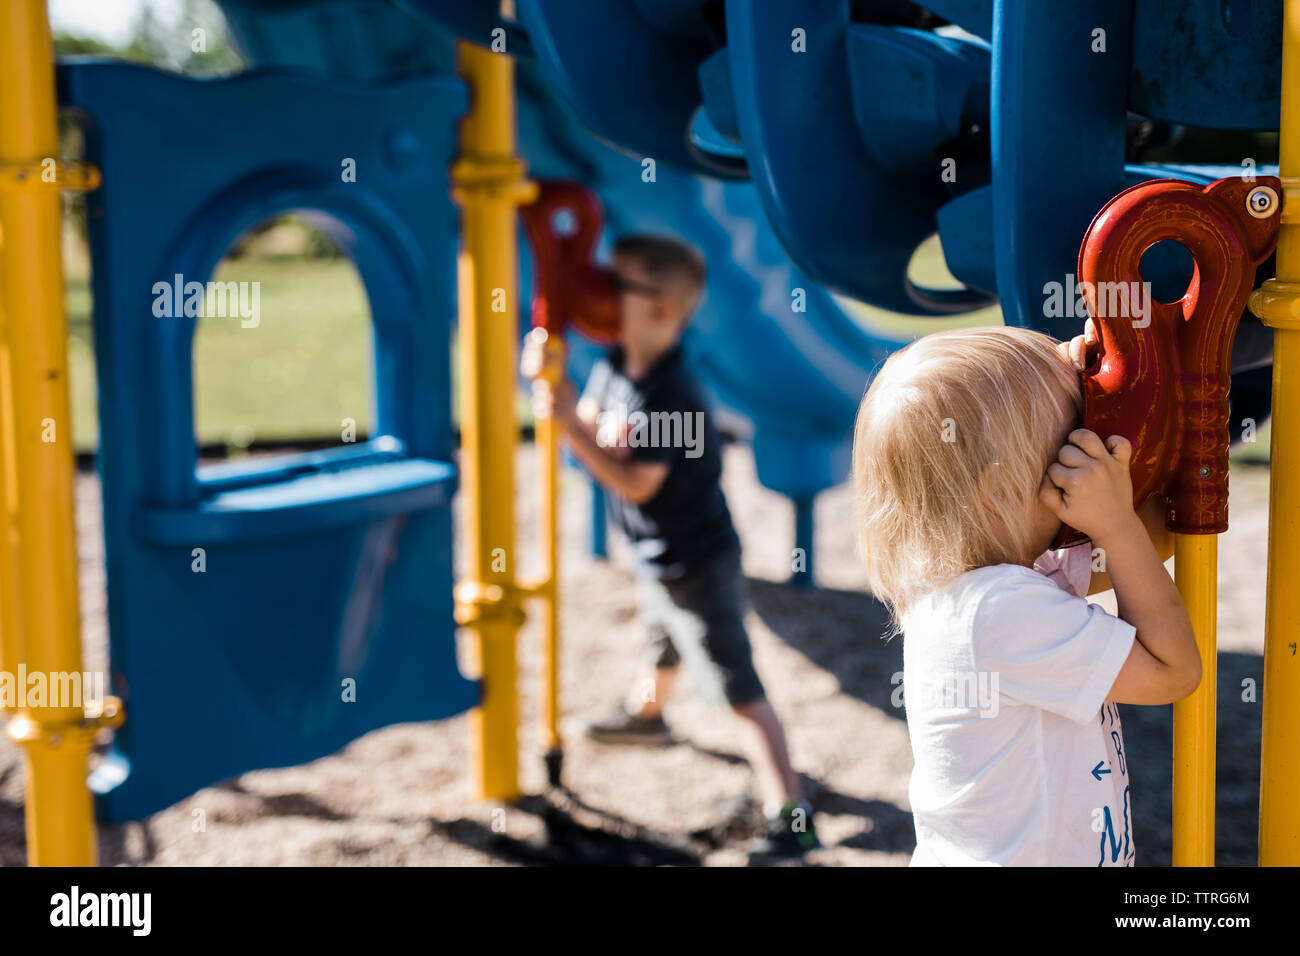 Brothers playing on outdoor play equipment at playground - Stock Image